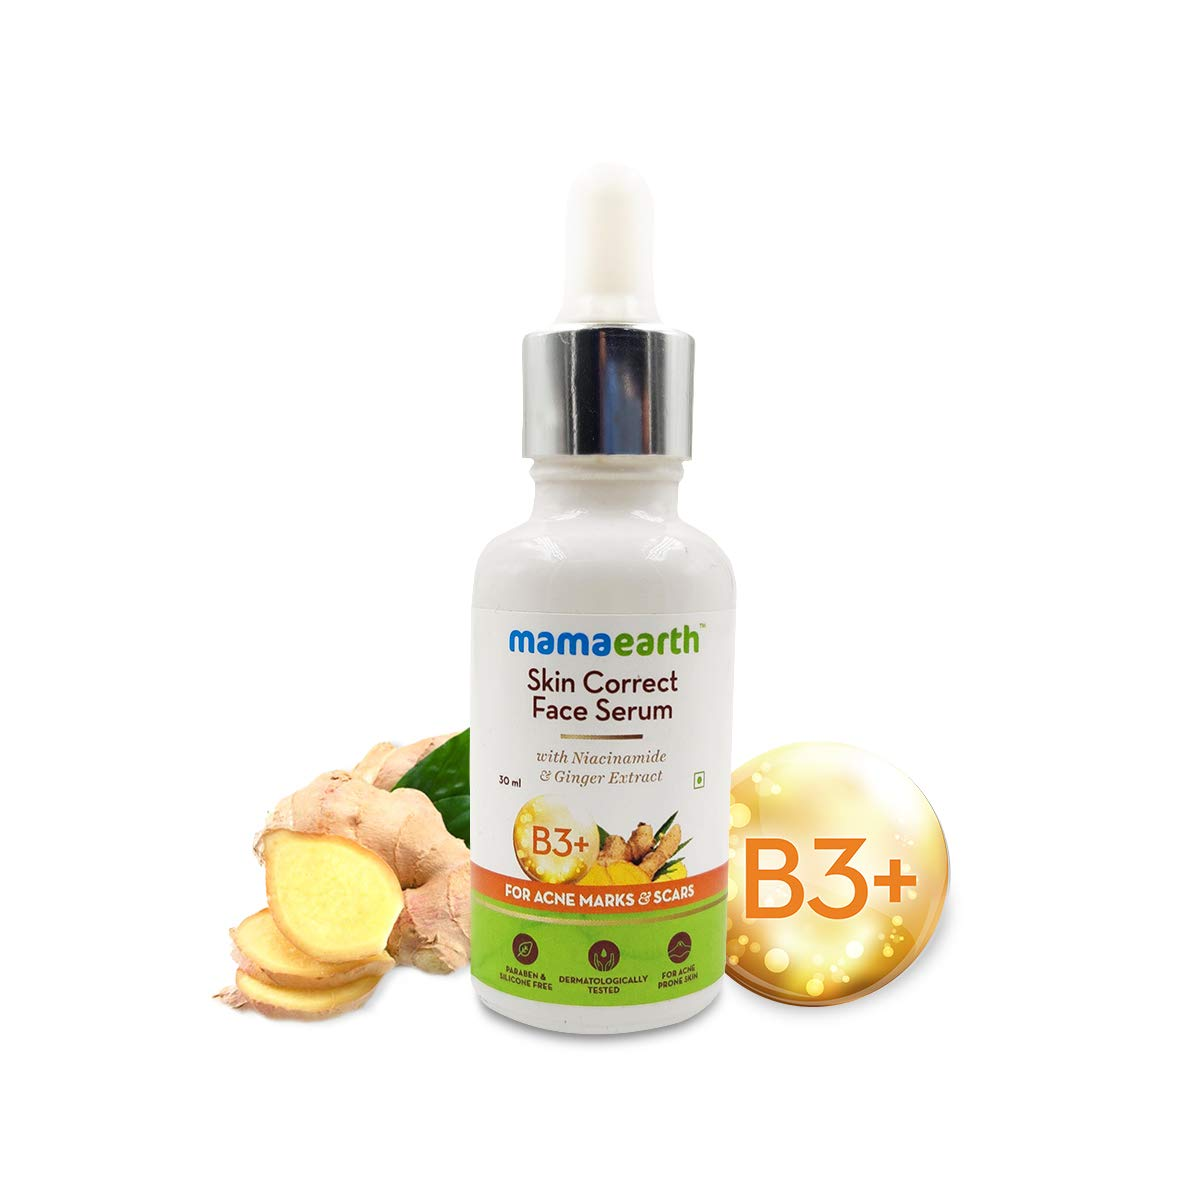 Mamaearth Skin Correct Face Serum Acne Scars Removal Cream With